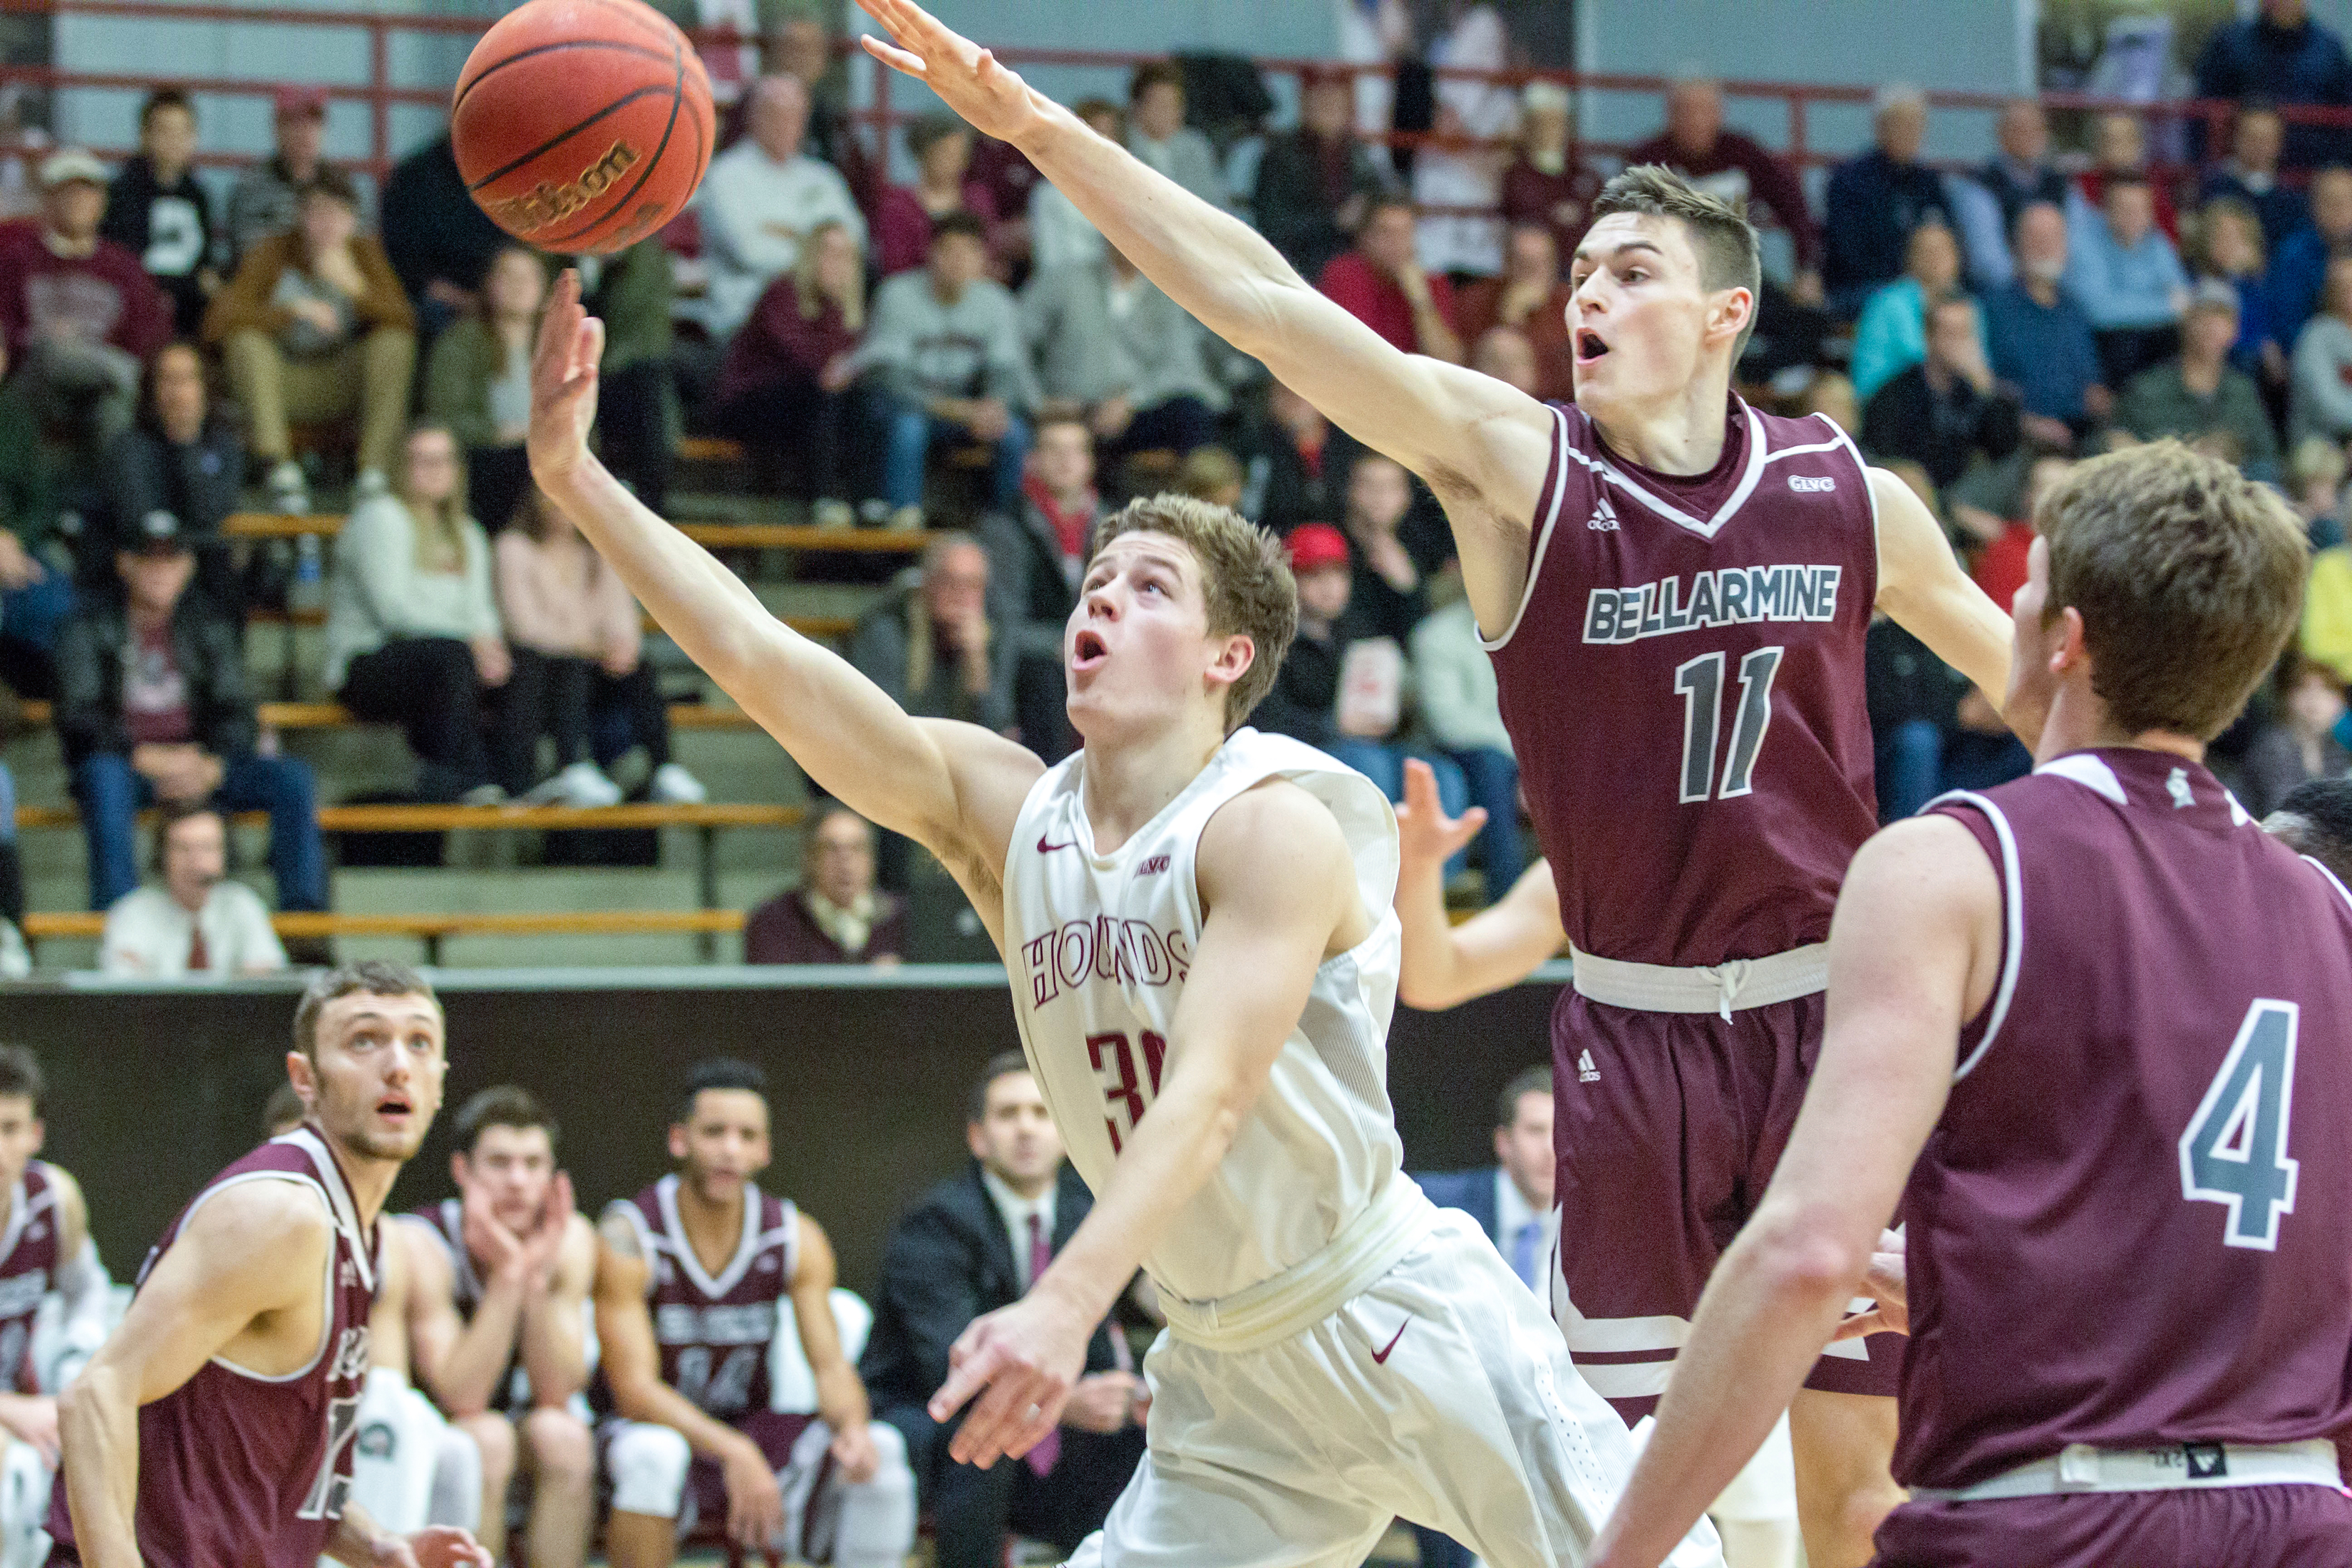 Junior Eric Davidson attempts to add two points on the board while fighting through two Bellarmine defenders.